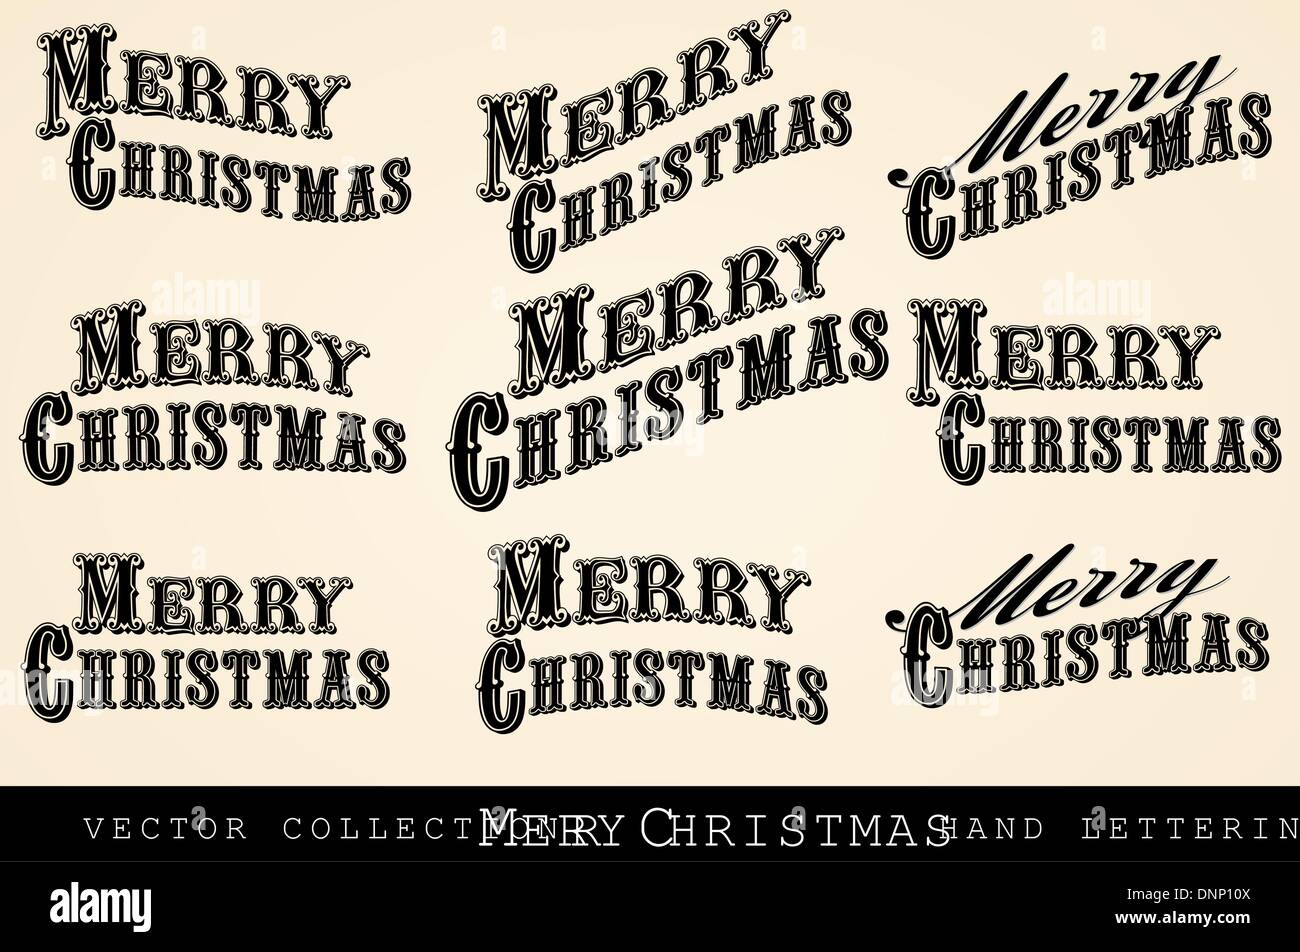 Vintage Victorian Merry Christmas Hand Drawn Typefaces